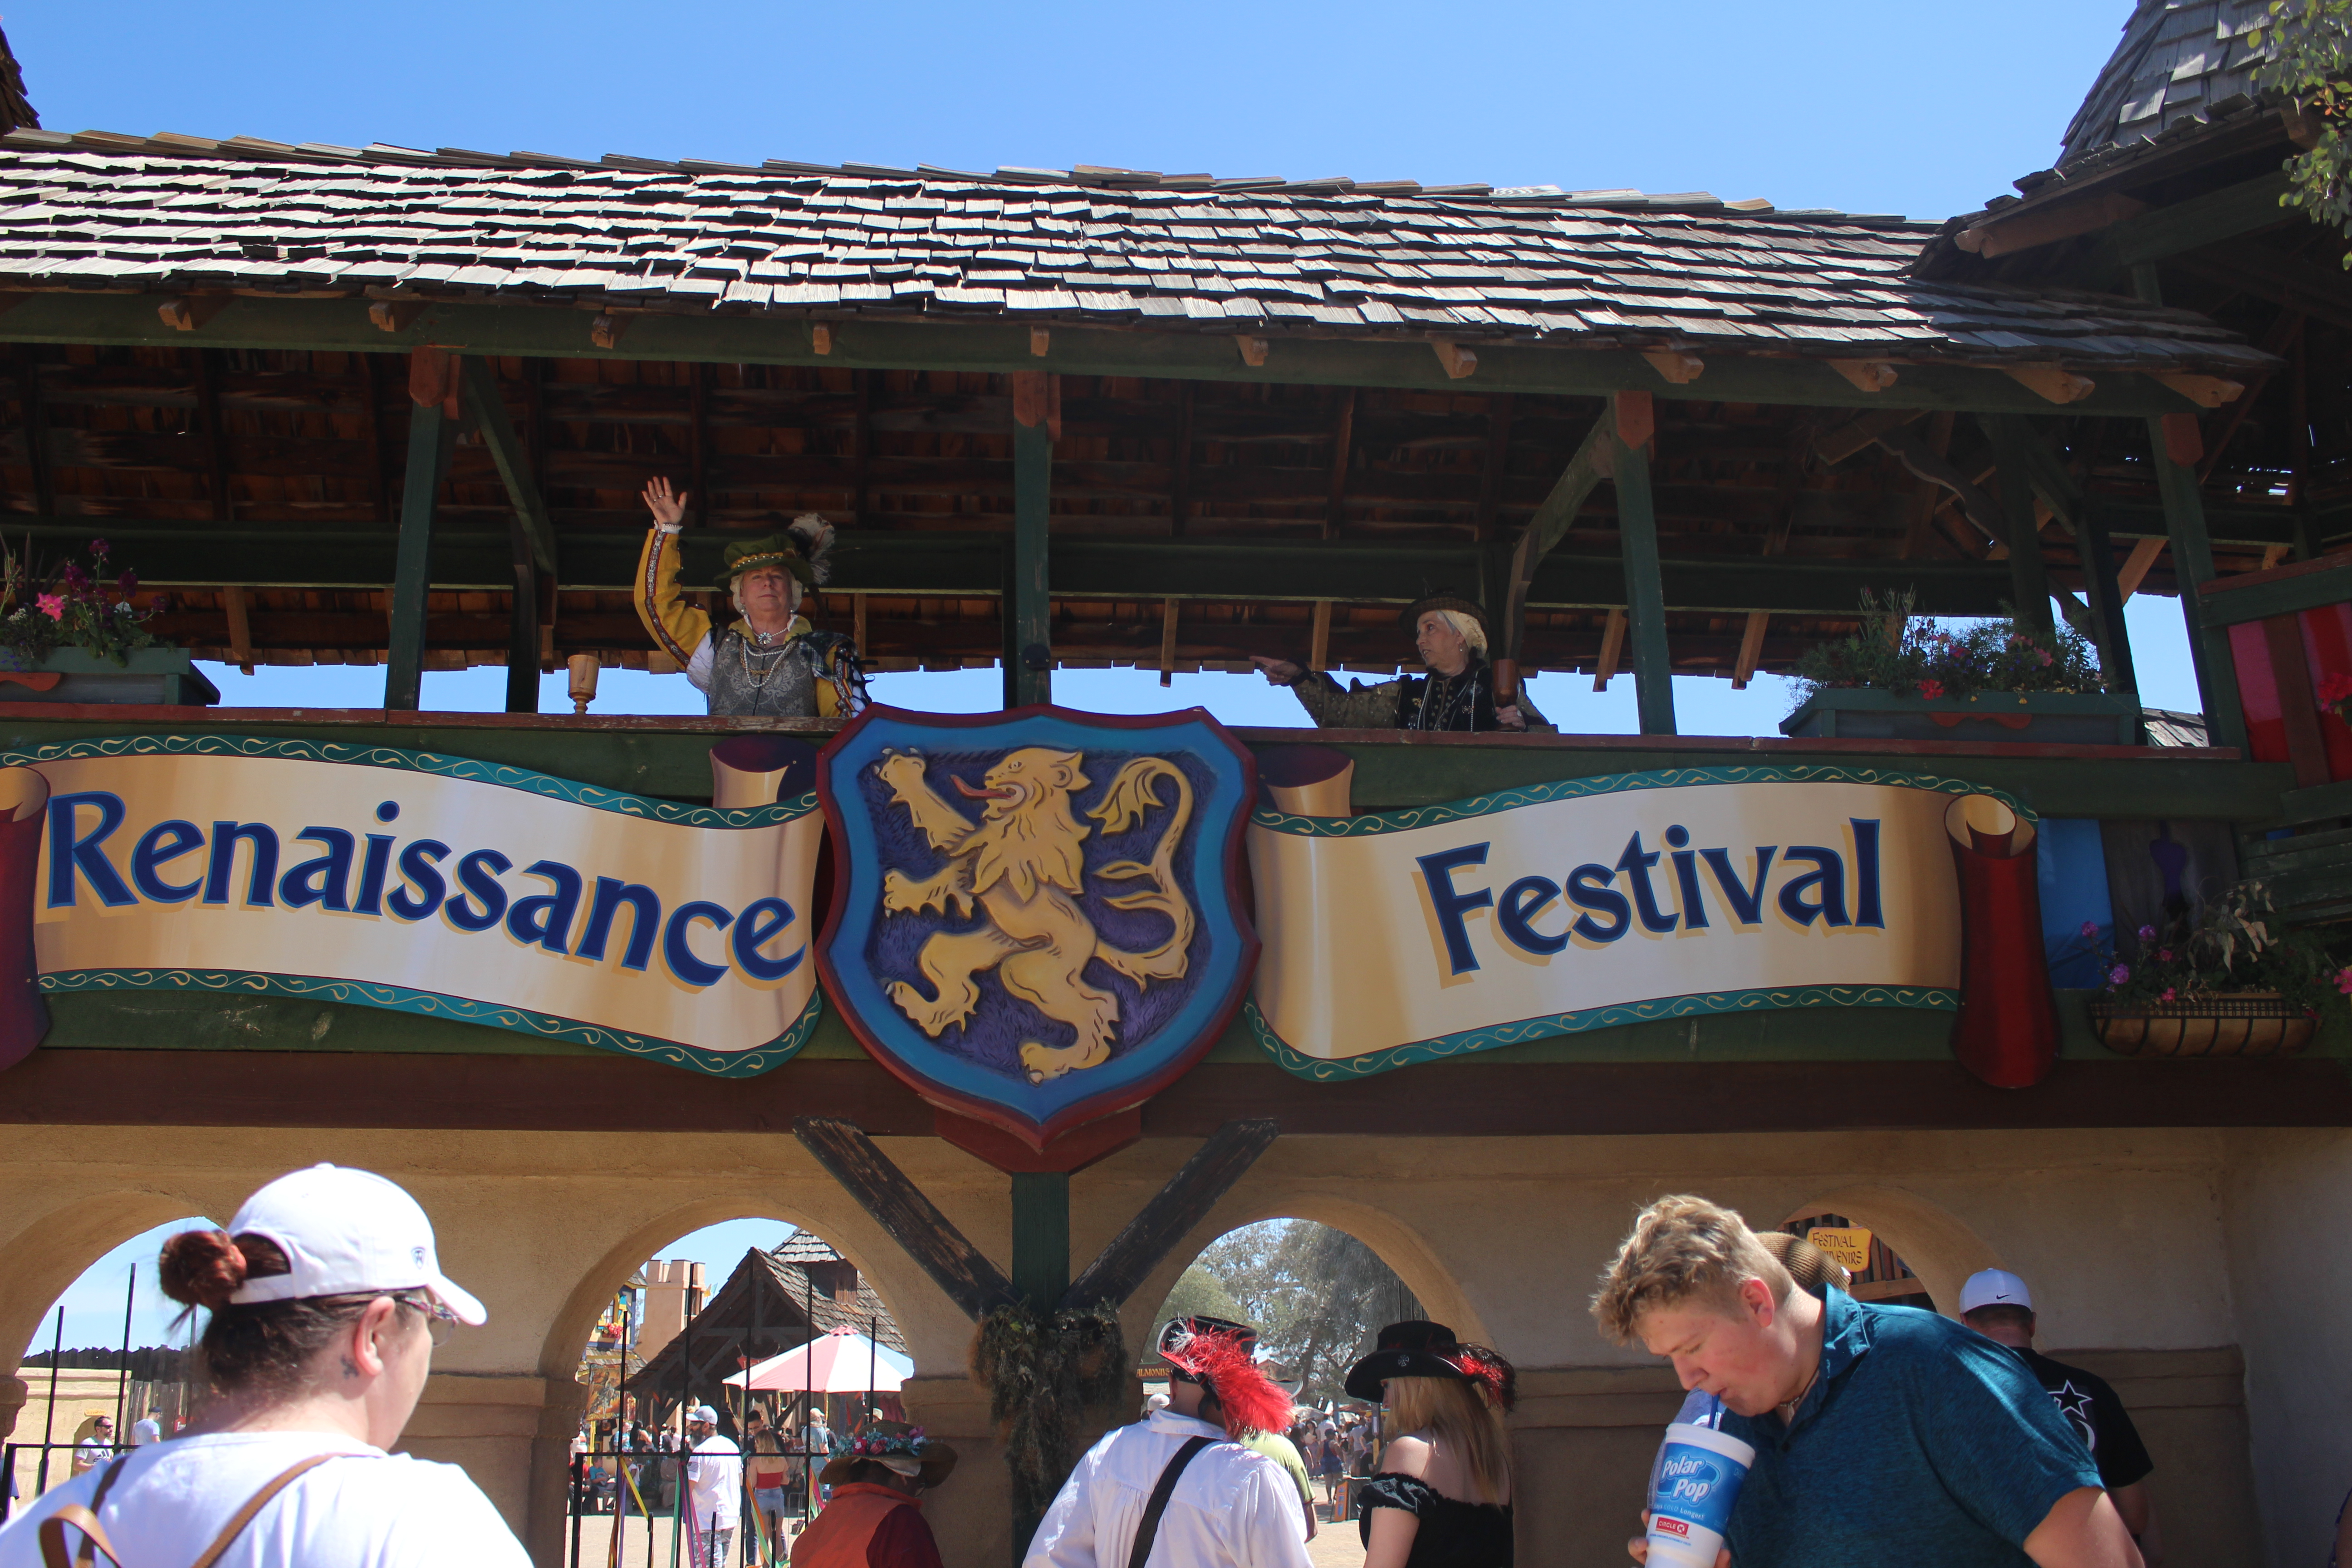 6 Major Things To See In A Renaissance Festival (ft. Arizona Renaissance Festival)